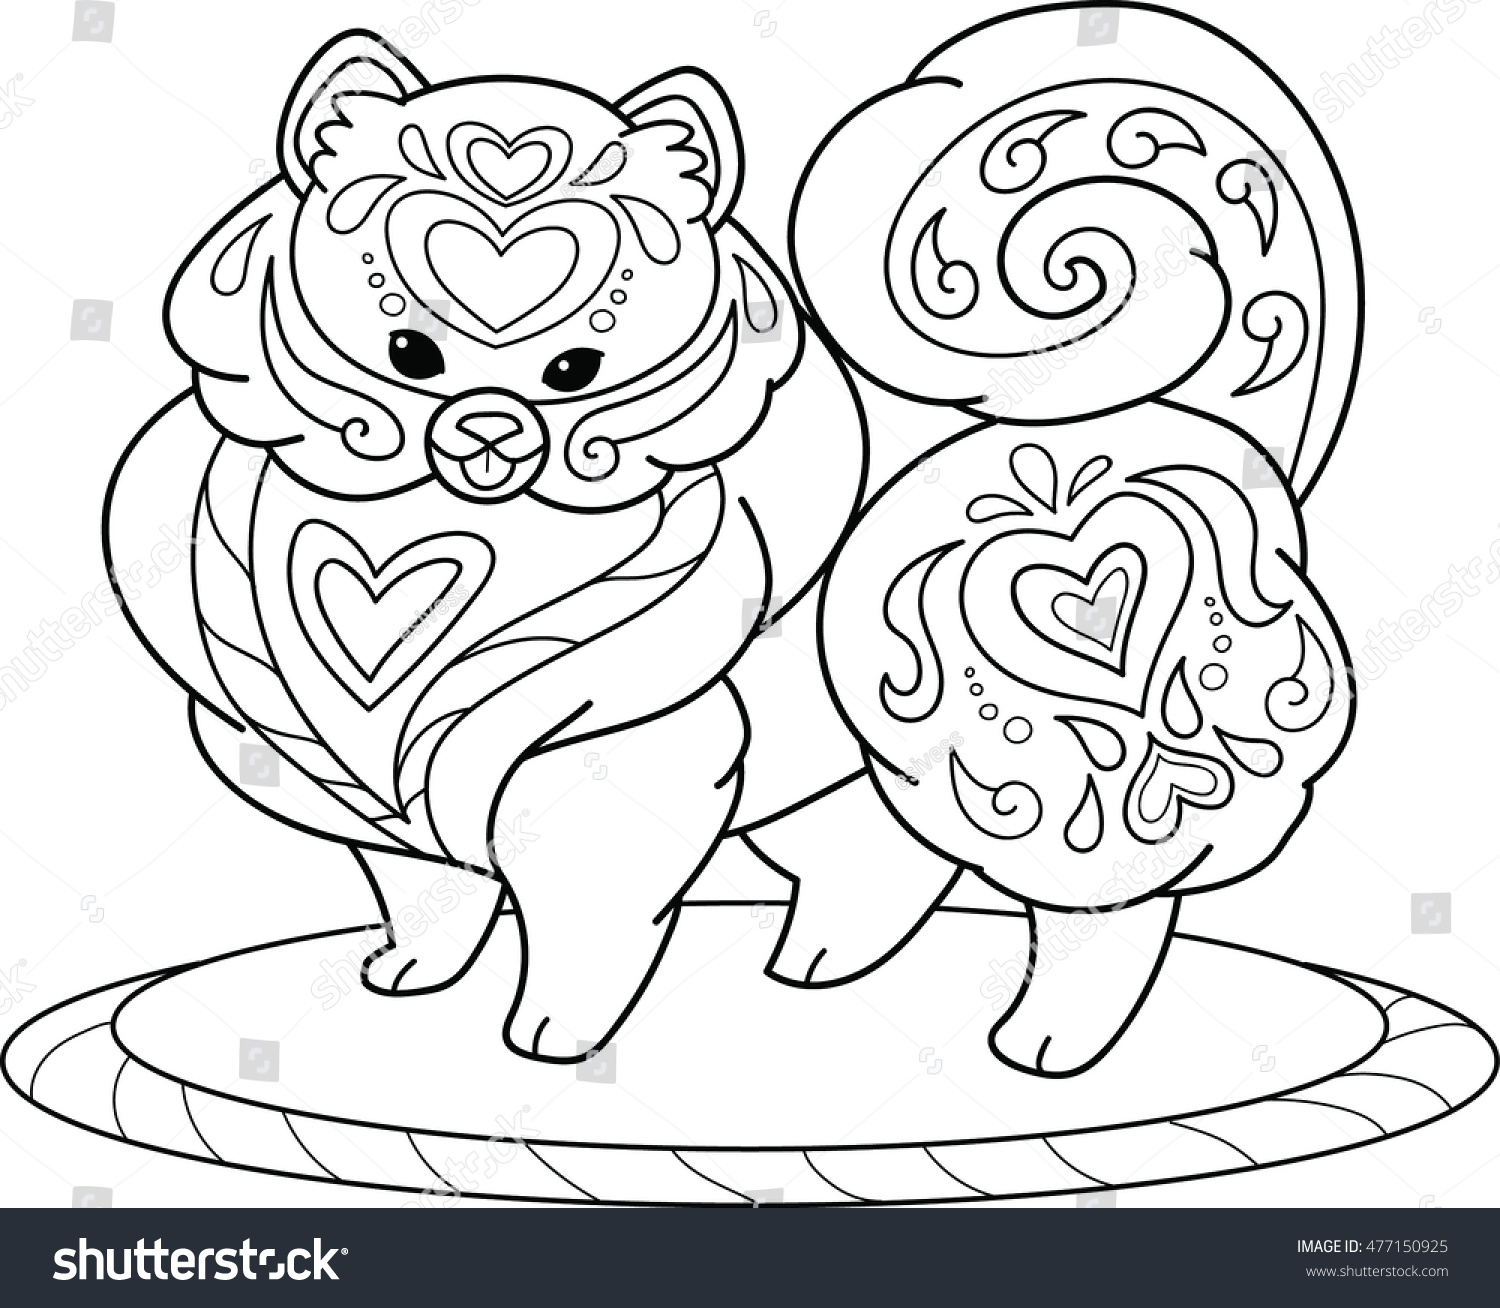 Pomeranian Coloring Page Stock Vector 477150925 - Shutterstock